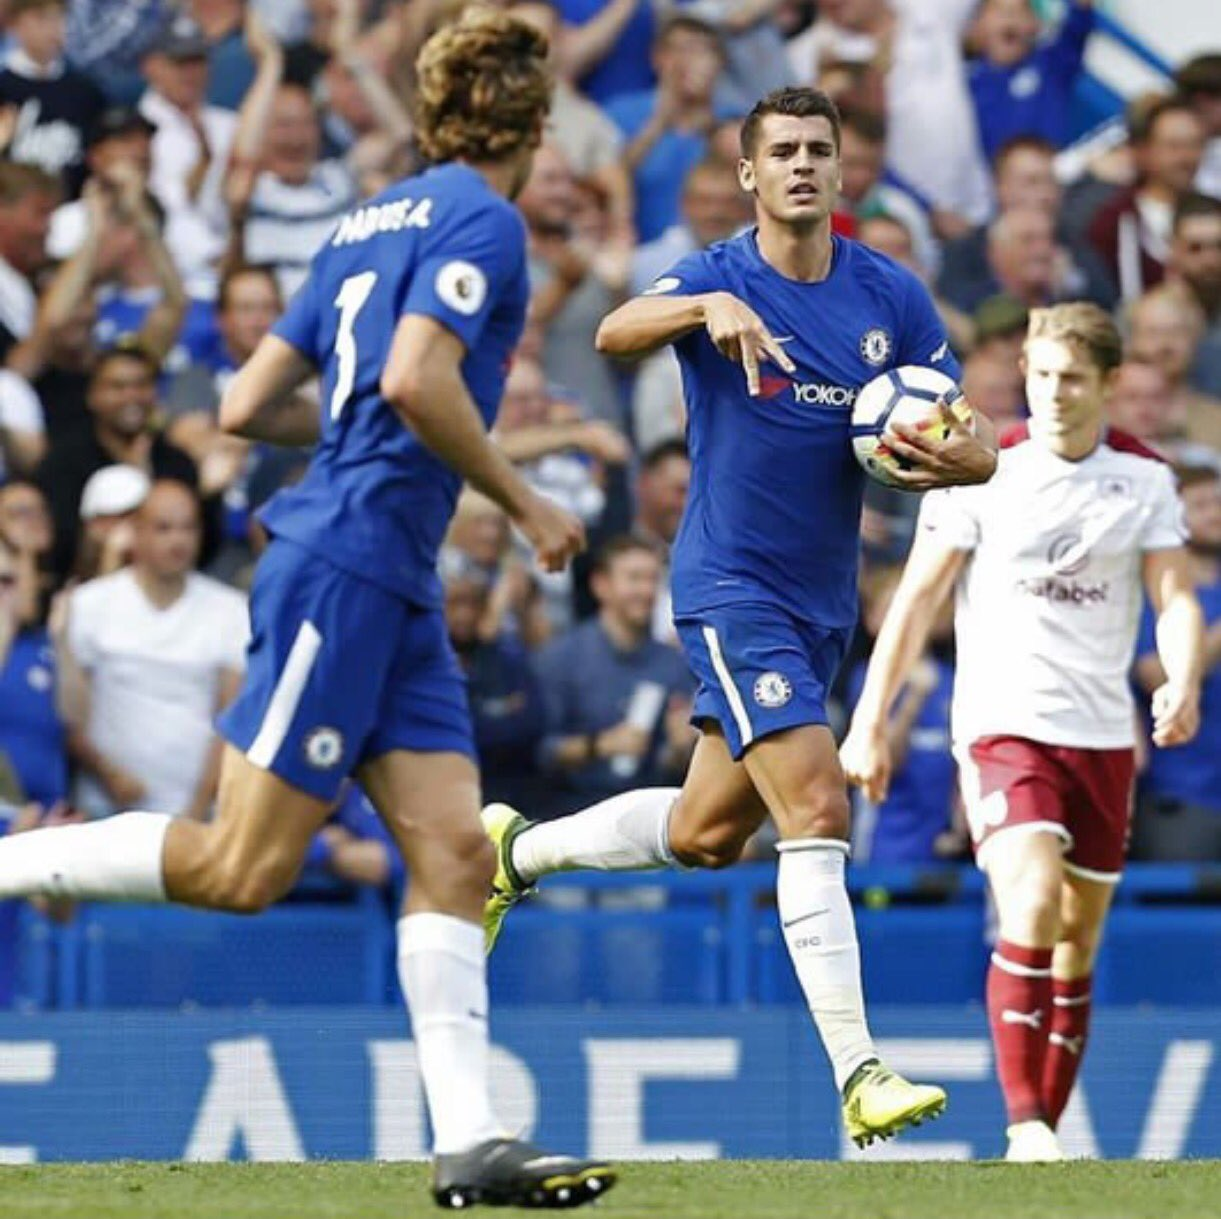 The match didn't go as we expected, but this is just the beginning! �������� #goChelsea https://t.co/chVsN1x4UN